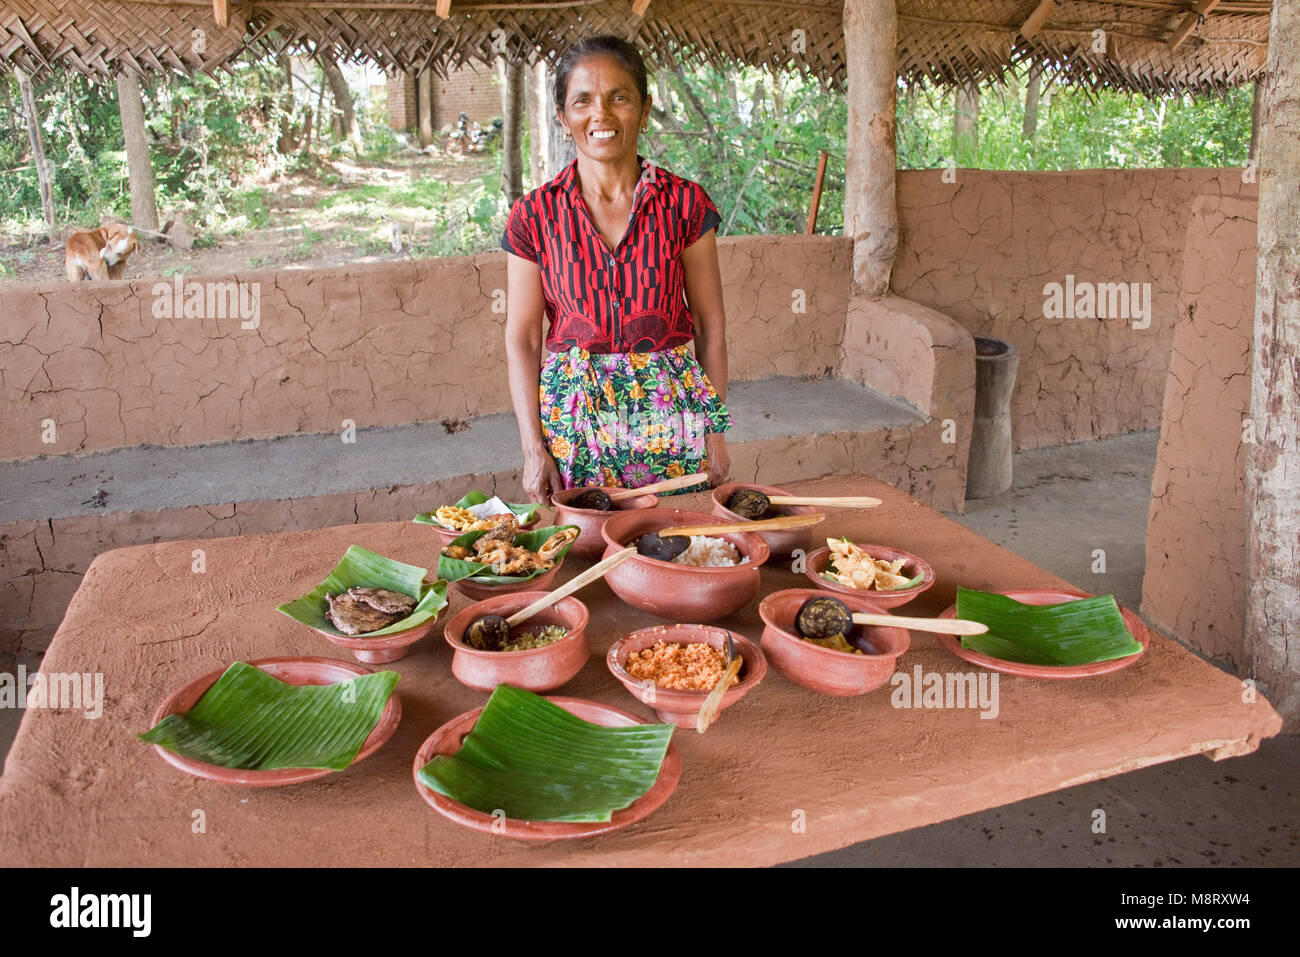 A friendly local Sri Lankan woman posing with traditional Sri Lankan food she has just prepared at her home, a small - Stock Image